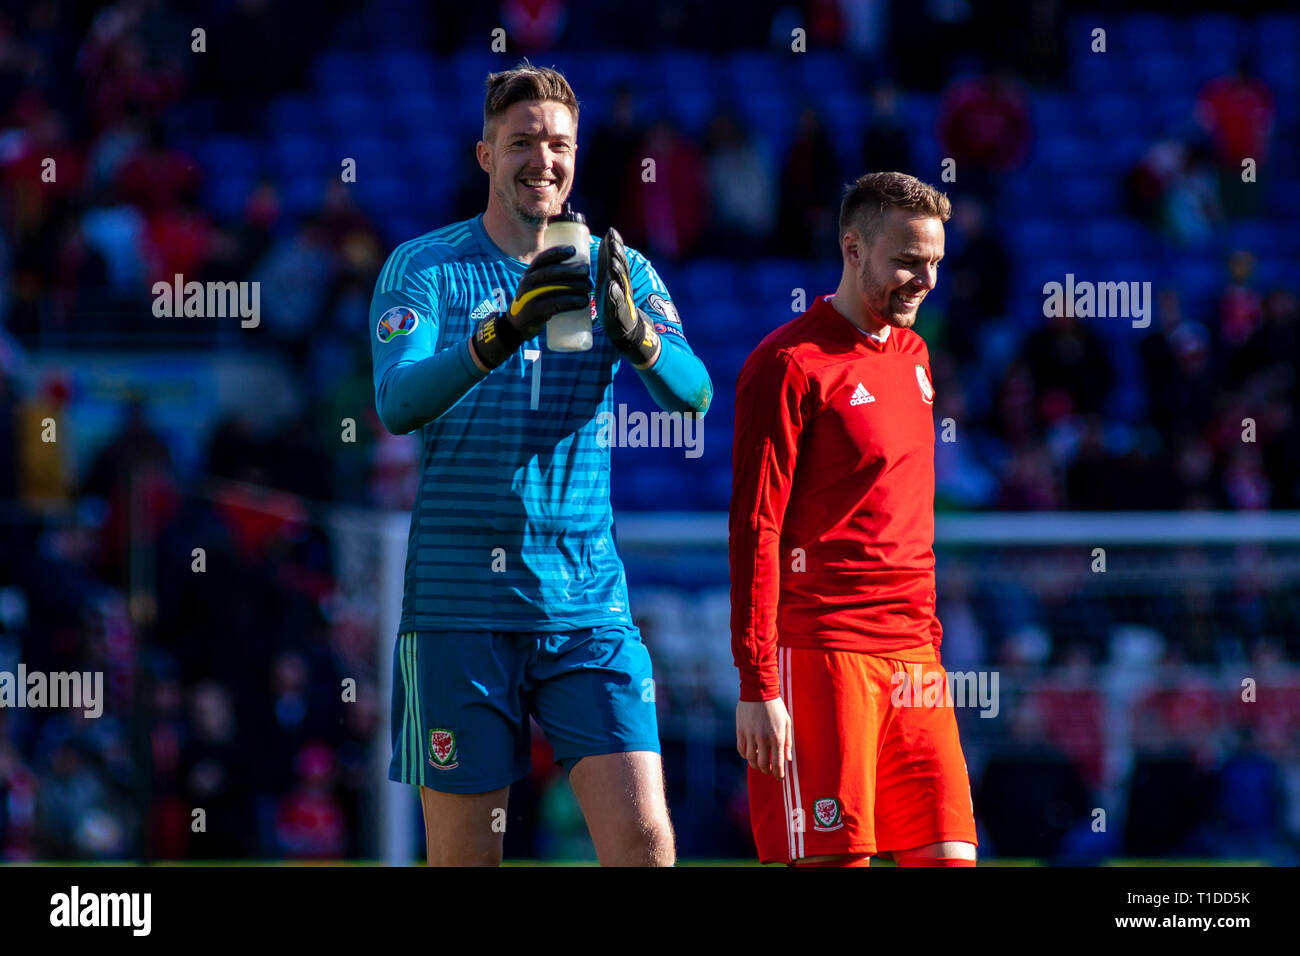 Wayne Hennessey of Wales celebrates at Full Time. Wales v Slovakia UEFA Euro 2020 Qualifier at the Cardiff City Stadium, Stock Photo